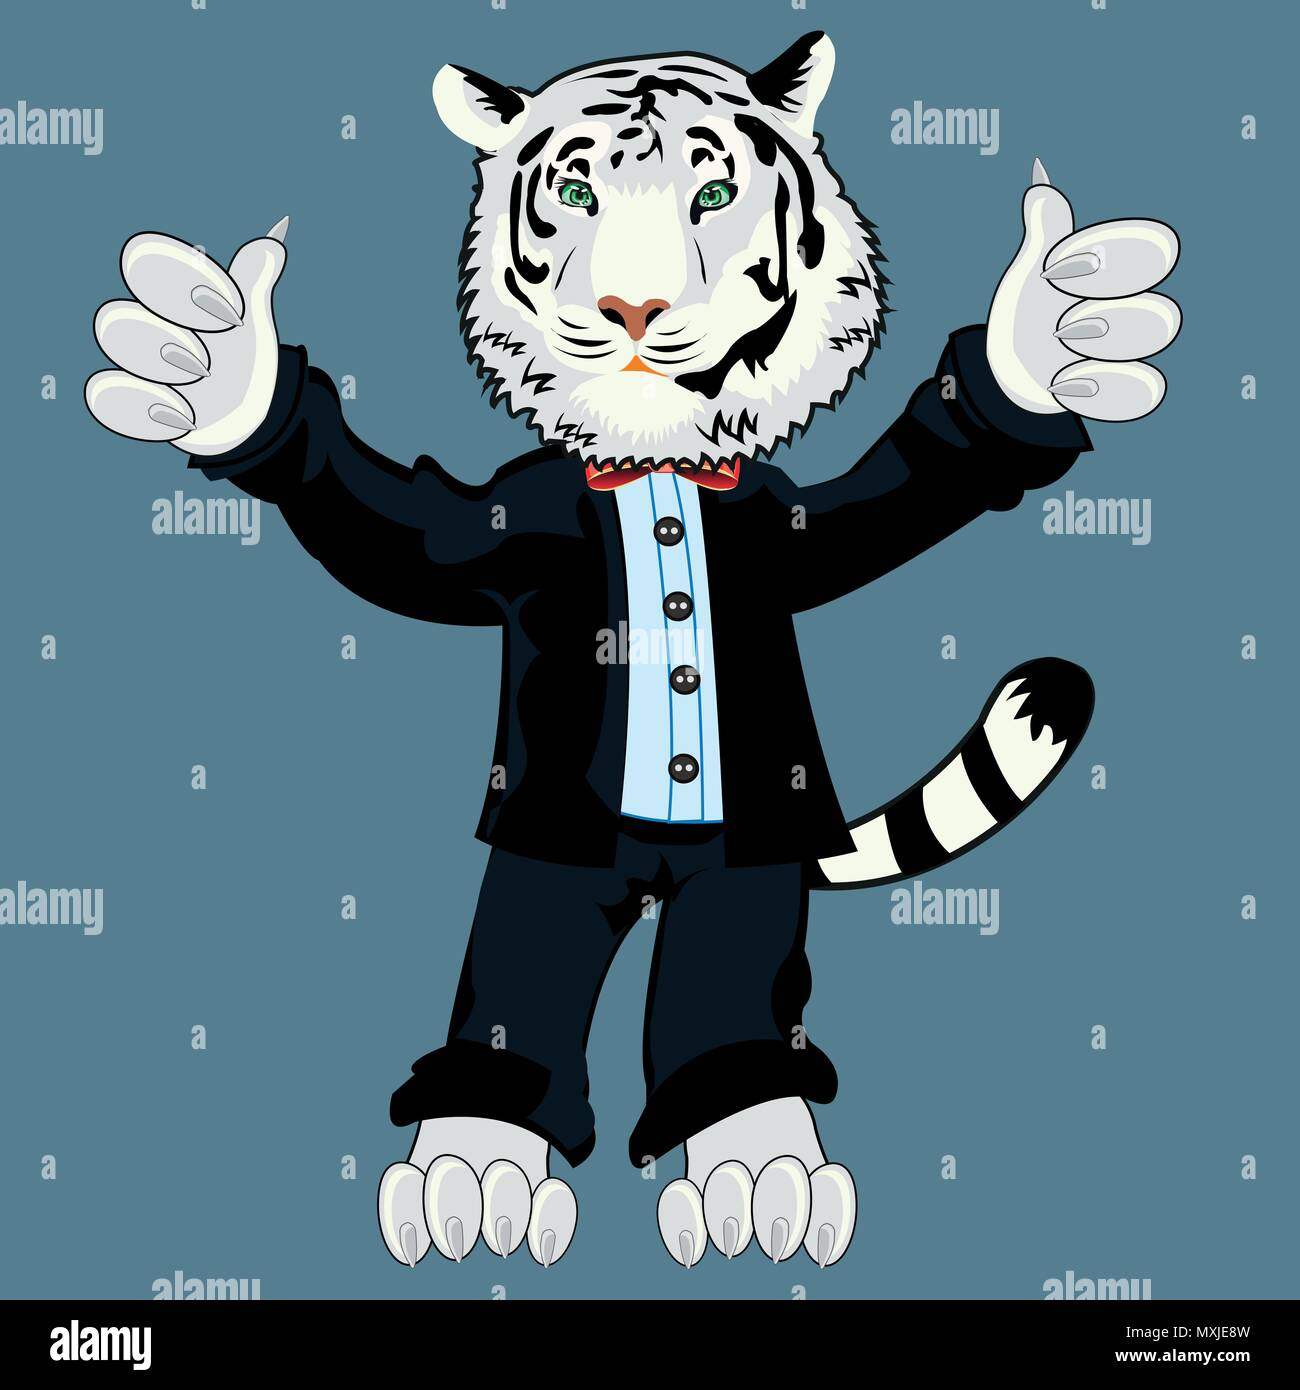 Tiger albino in suit - Stock Image